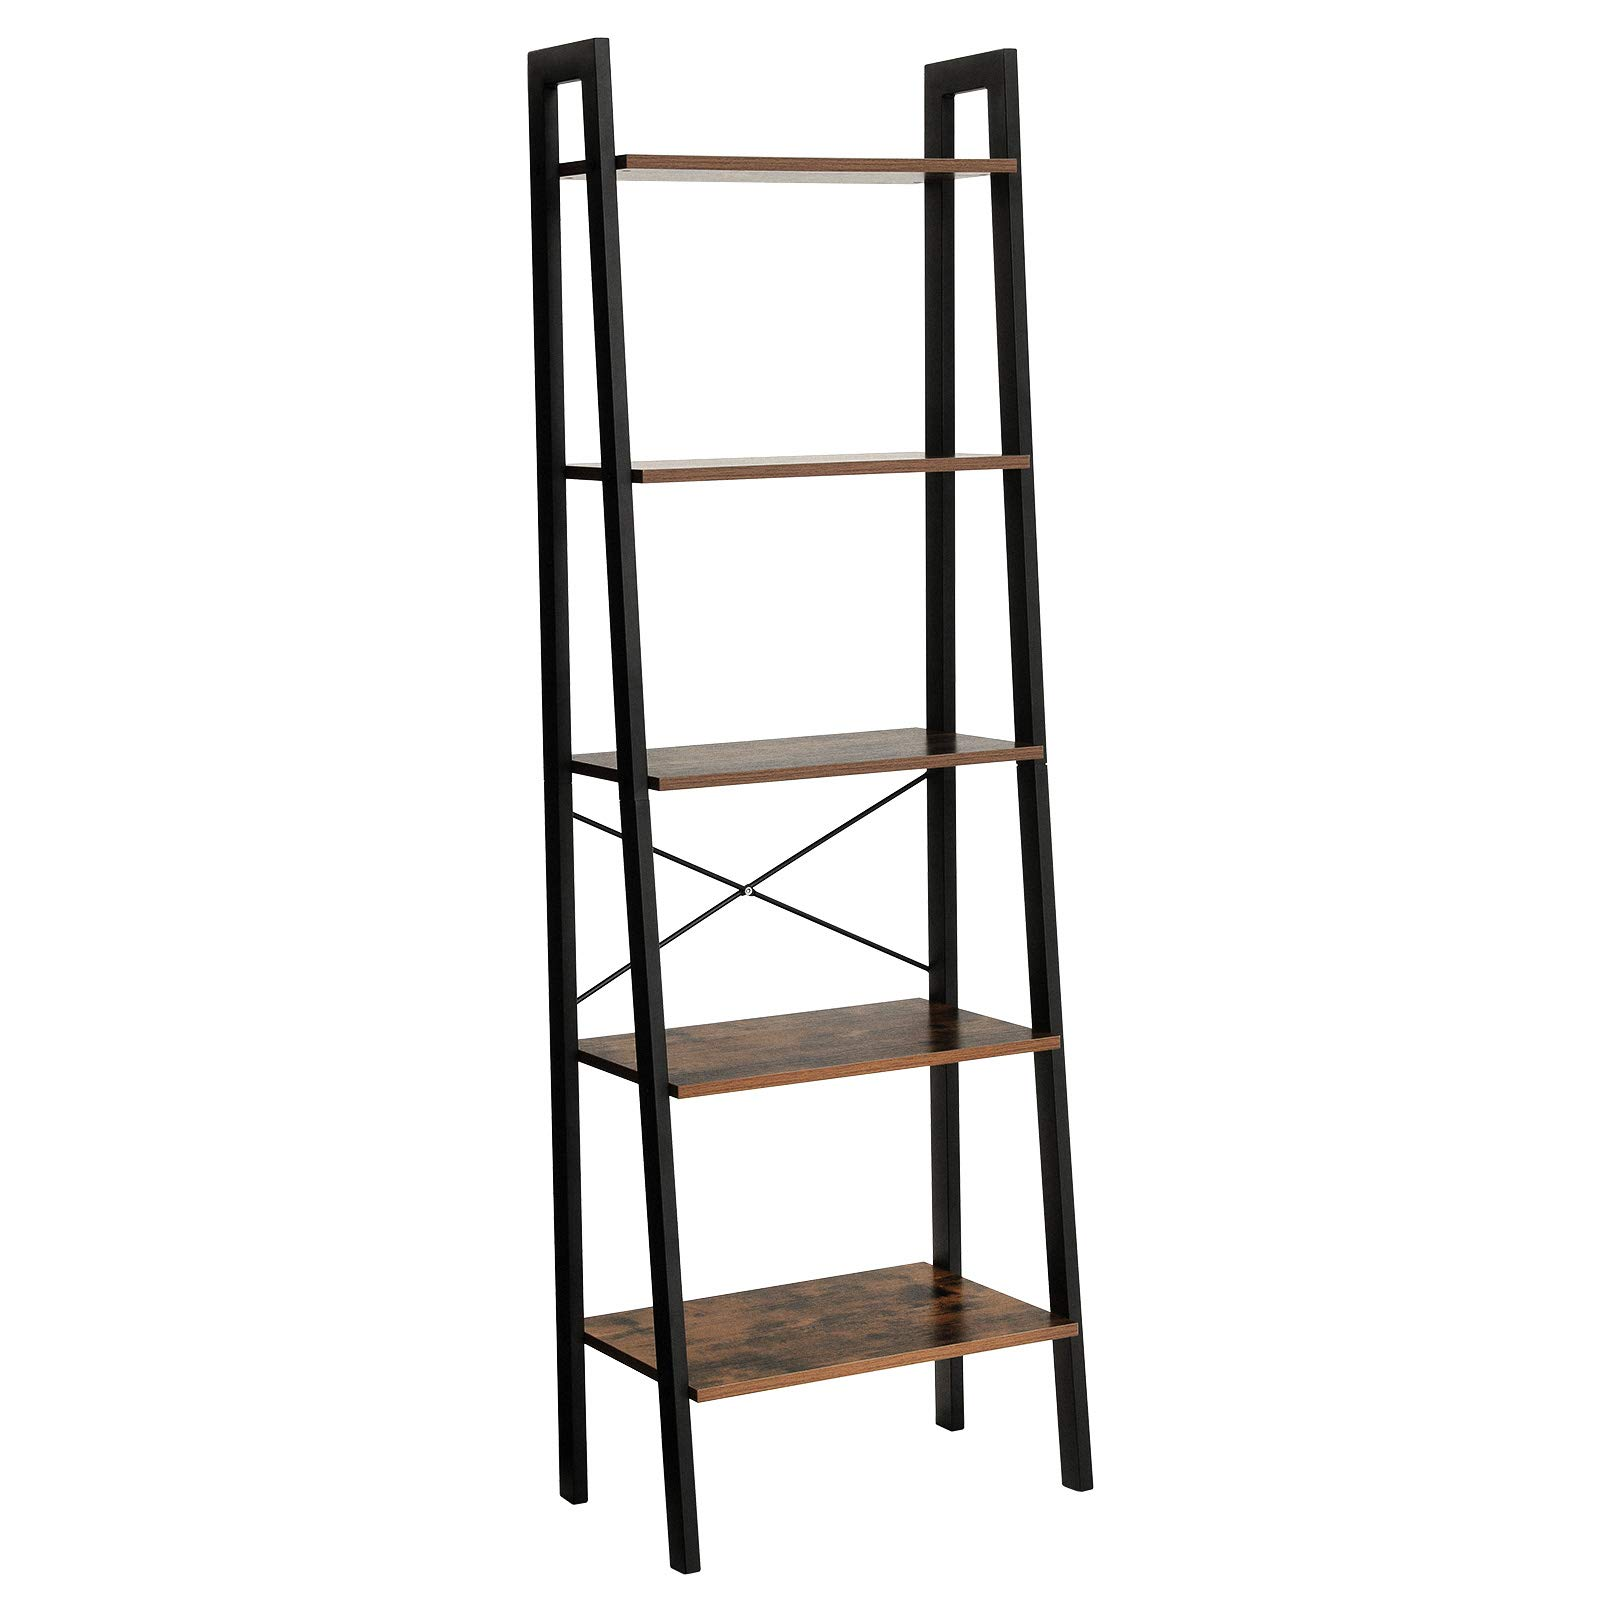 SONGMICS Vintage Ladder Shelf, 5-Tier Bookcase, Plant Stand and Storage Rack Wood Look Accent Furniture with Metal Frame for Home Office ULLS45X